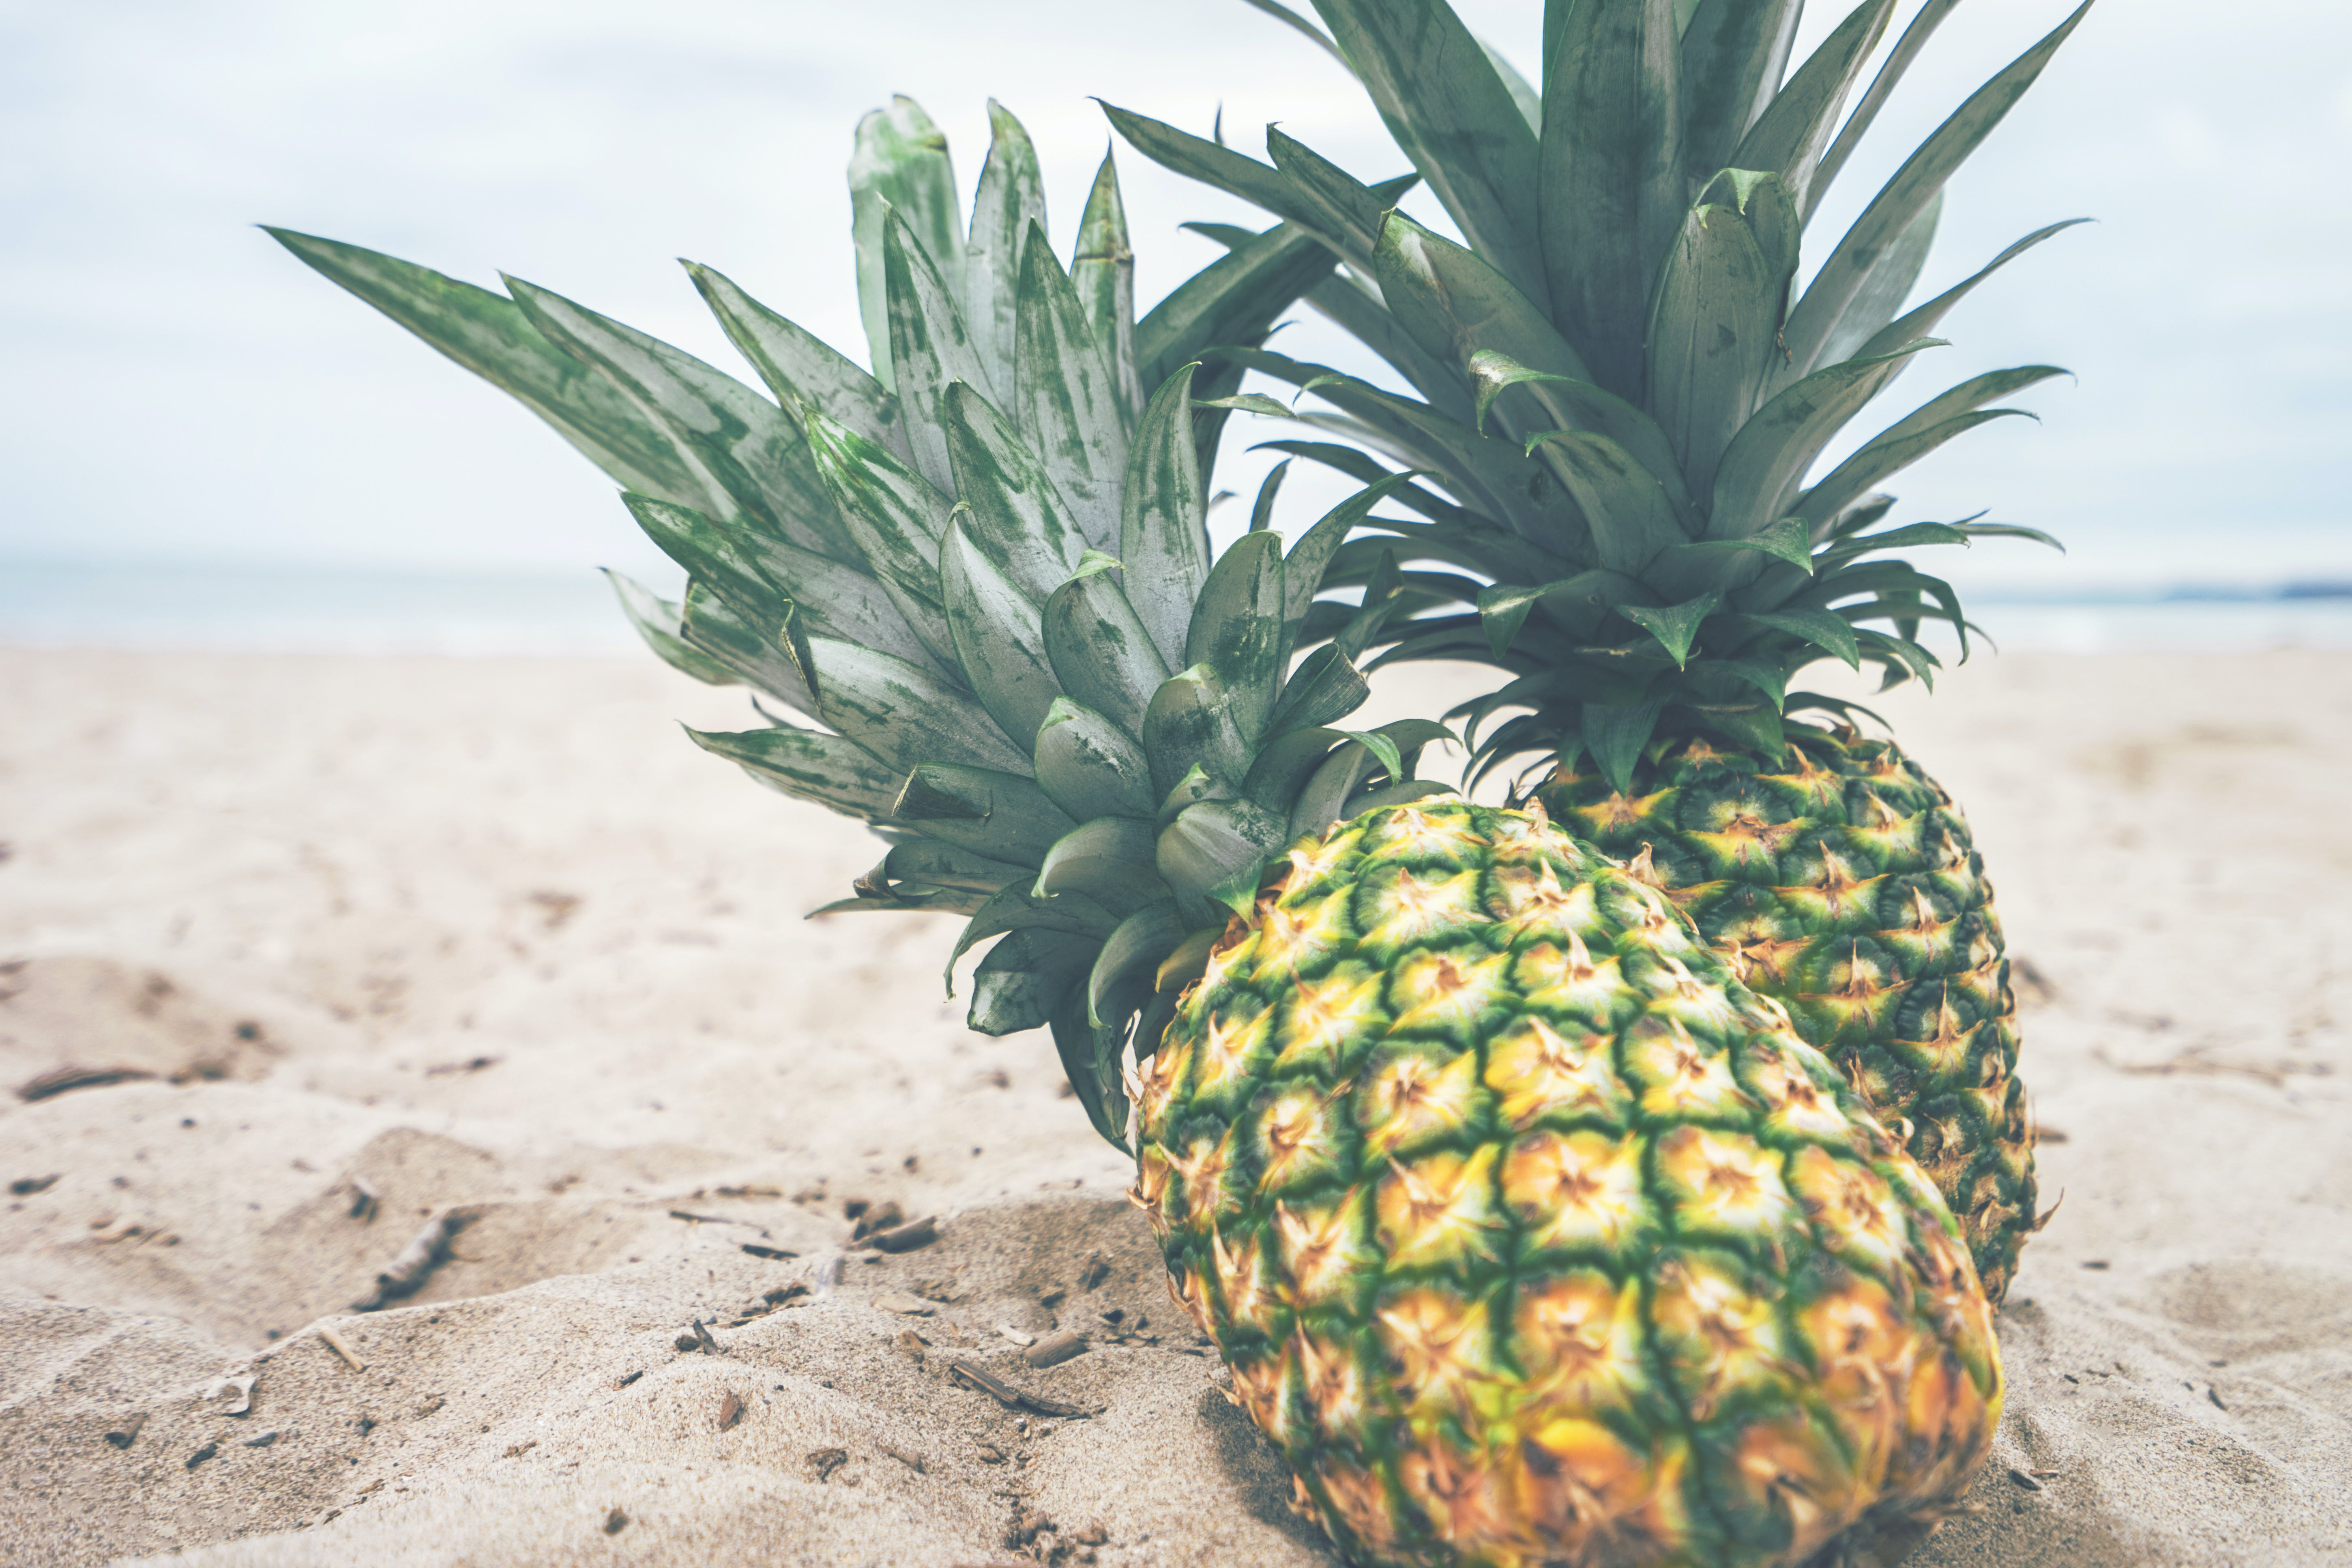 Two Pineapple Fruit on Sad Near Body of Water